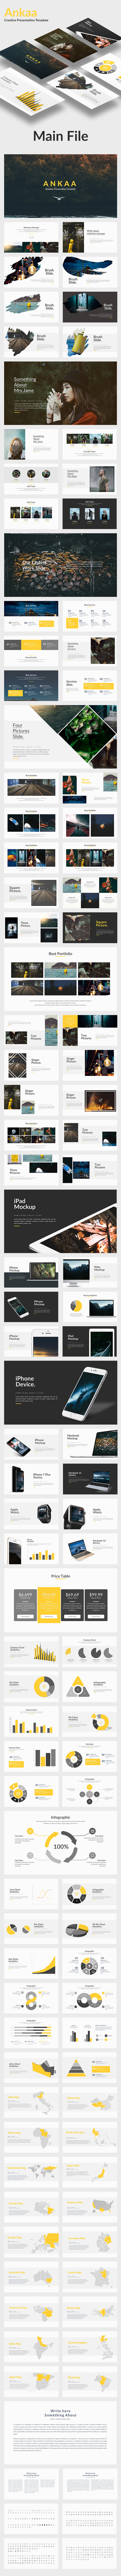 Ankaa - Creative Powerpoint Template - Creative PowerPoint Templates